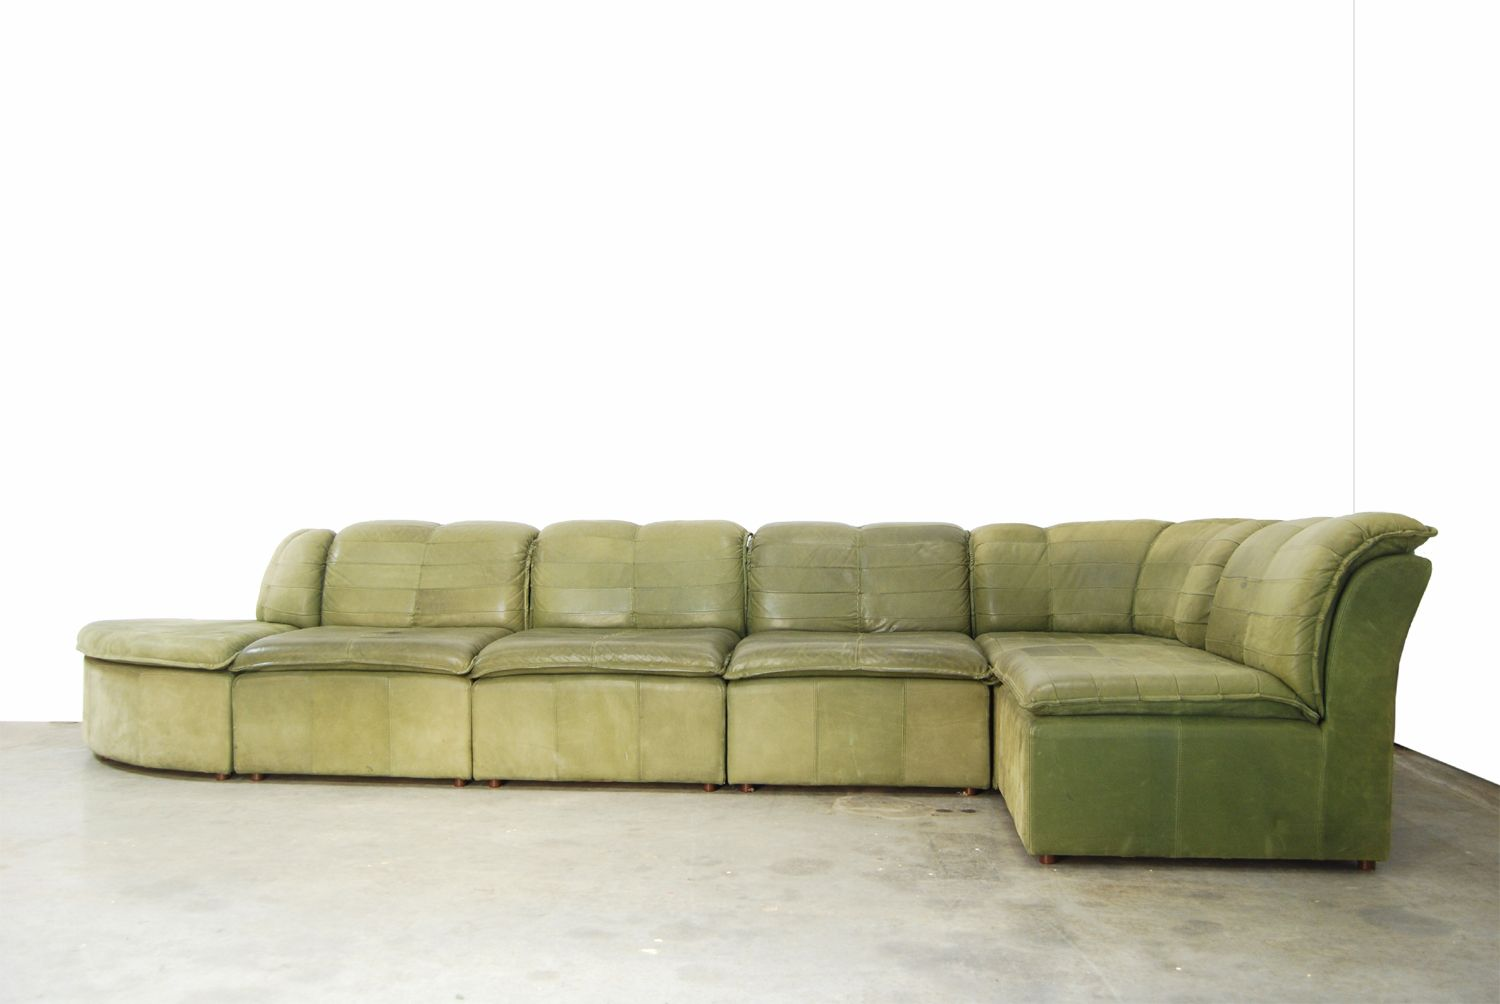 nubuck leather sofa chelsea room and board modular from laauser 1970s for sale